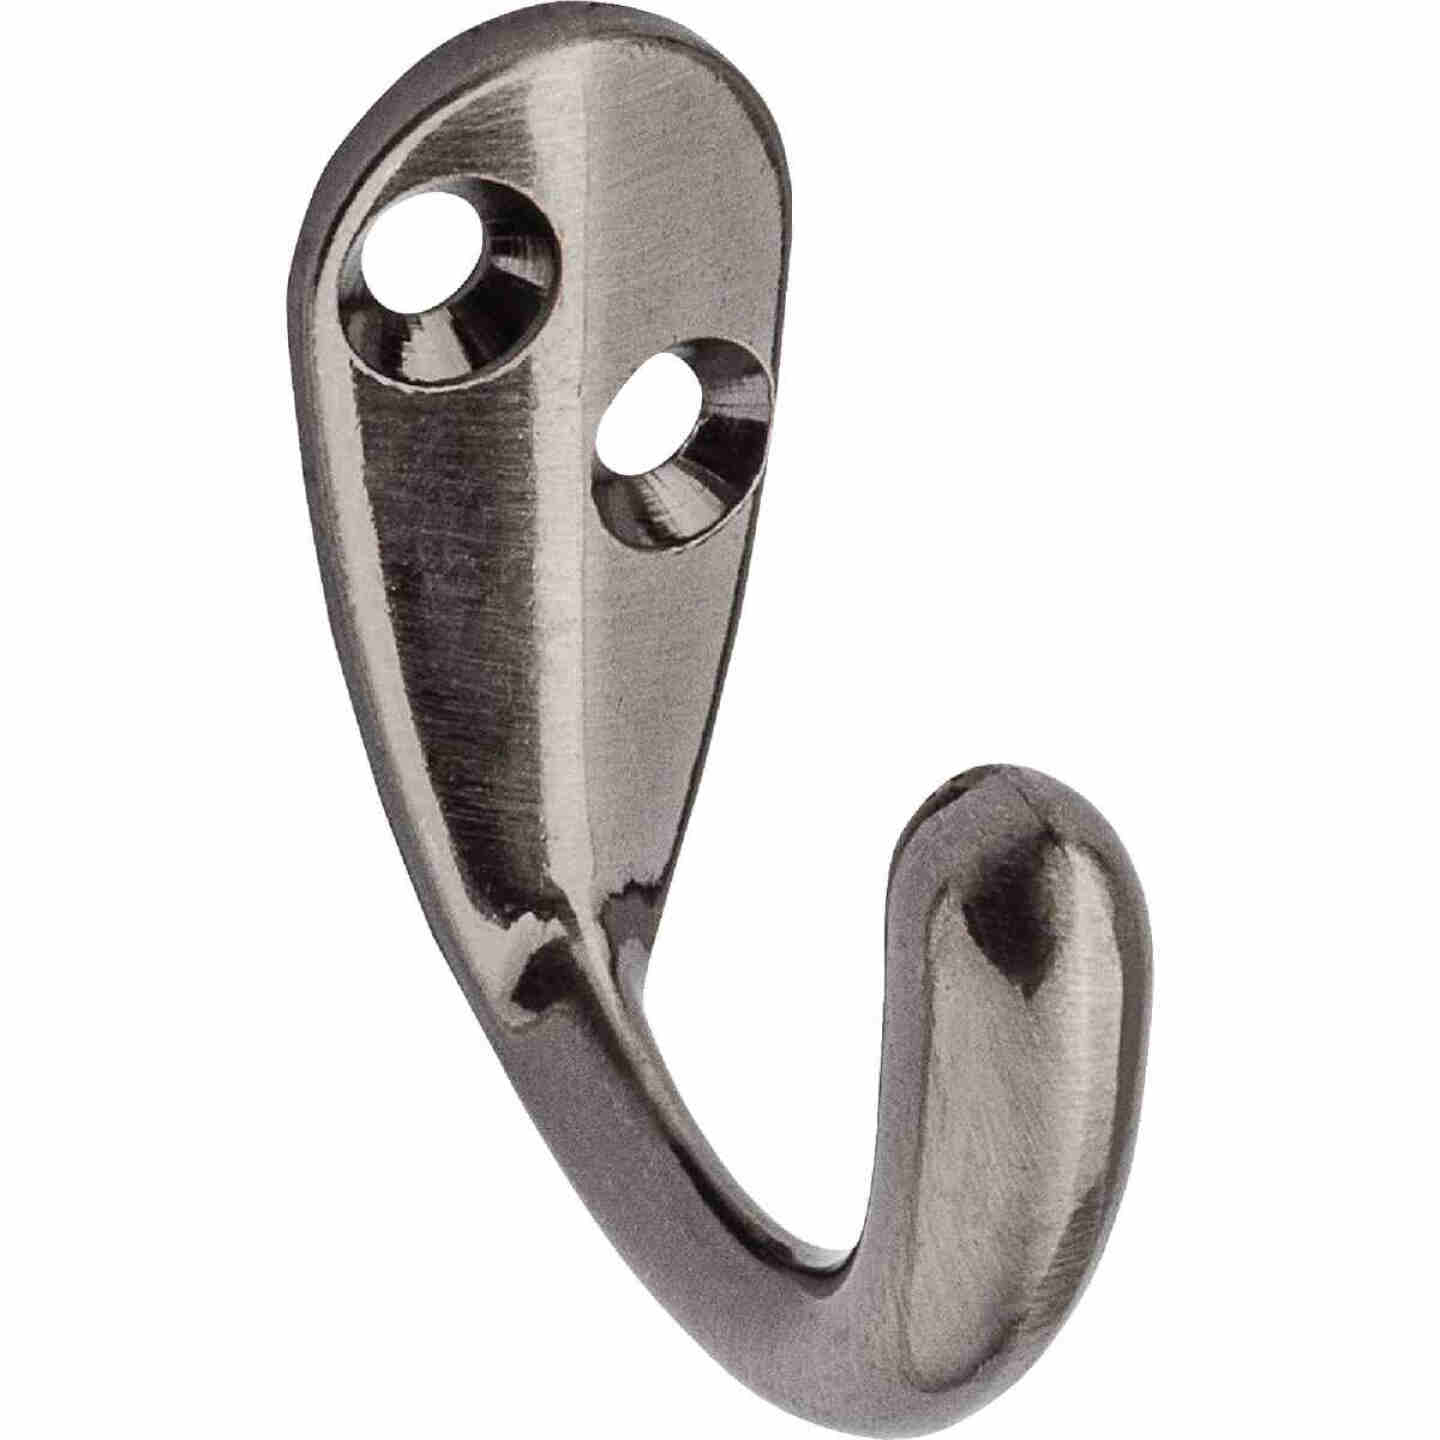 National Pewter Single Clothes Wardrobe Hook, 2 per Card Image 1